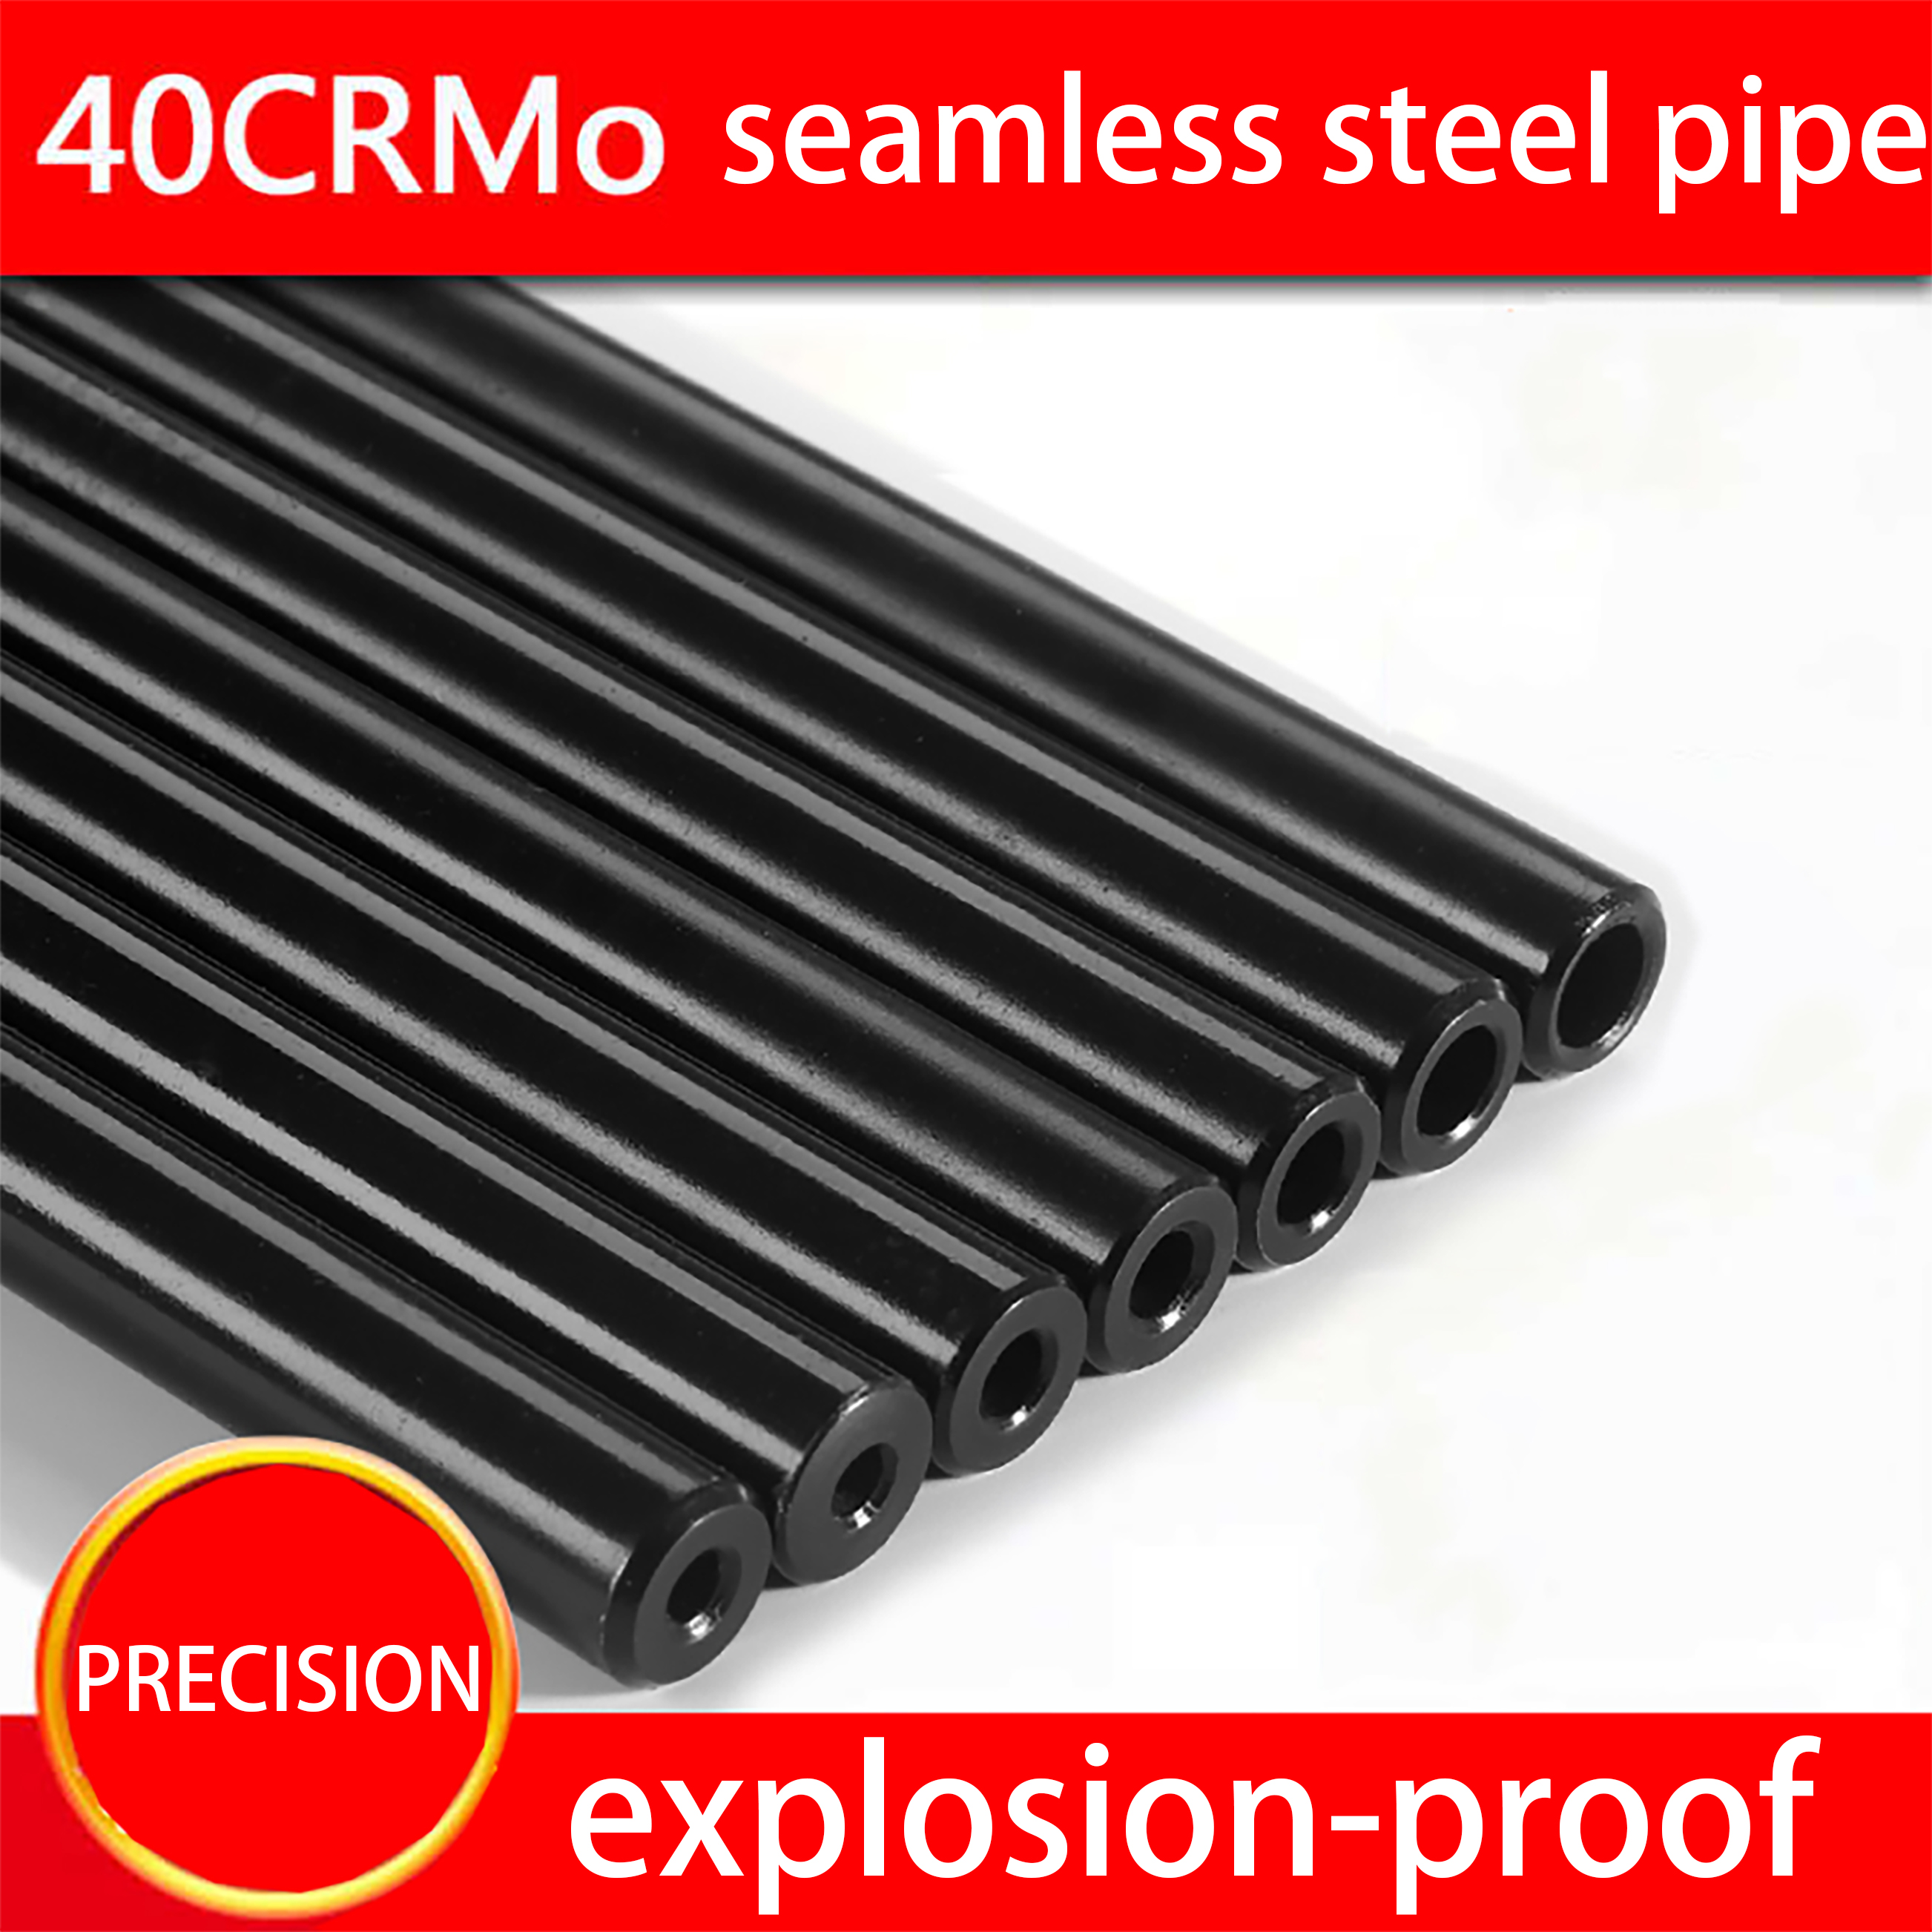 12mm OD Hydraulic Seamless Steel Pipe Alloy Steel Tubes Explosion-proof Pipe For Home Diy